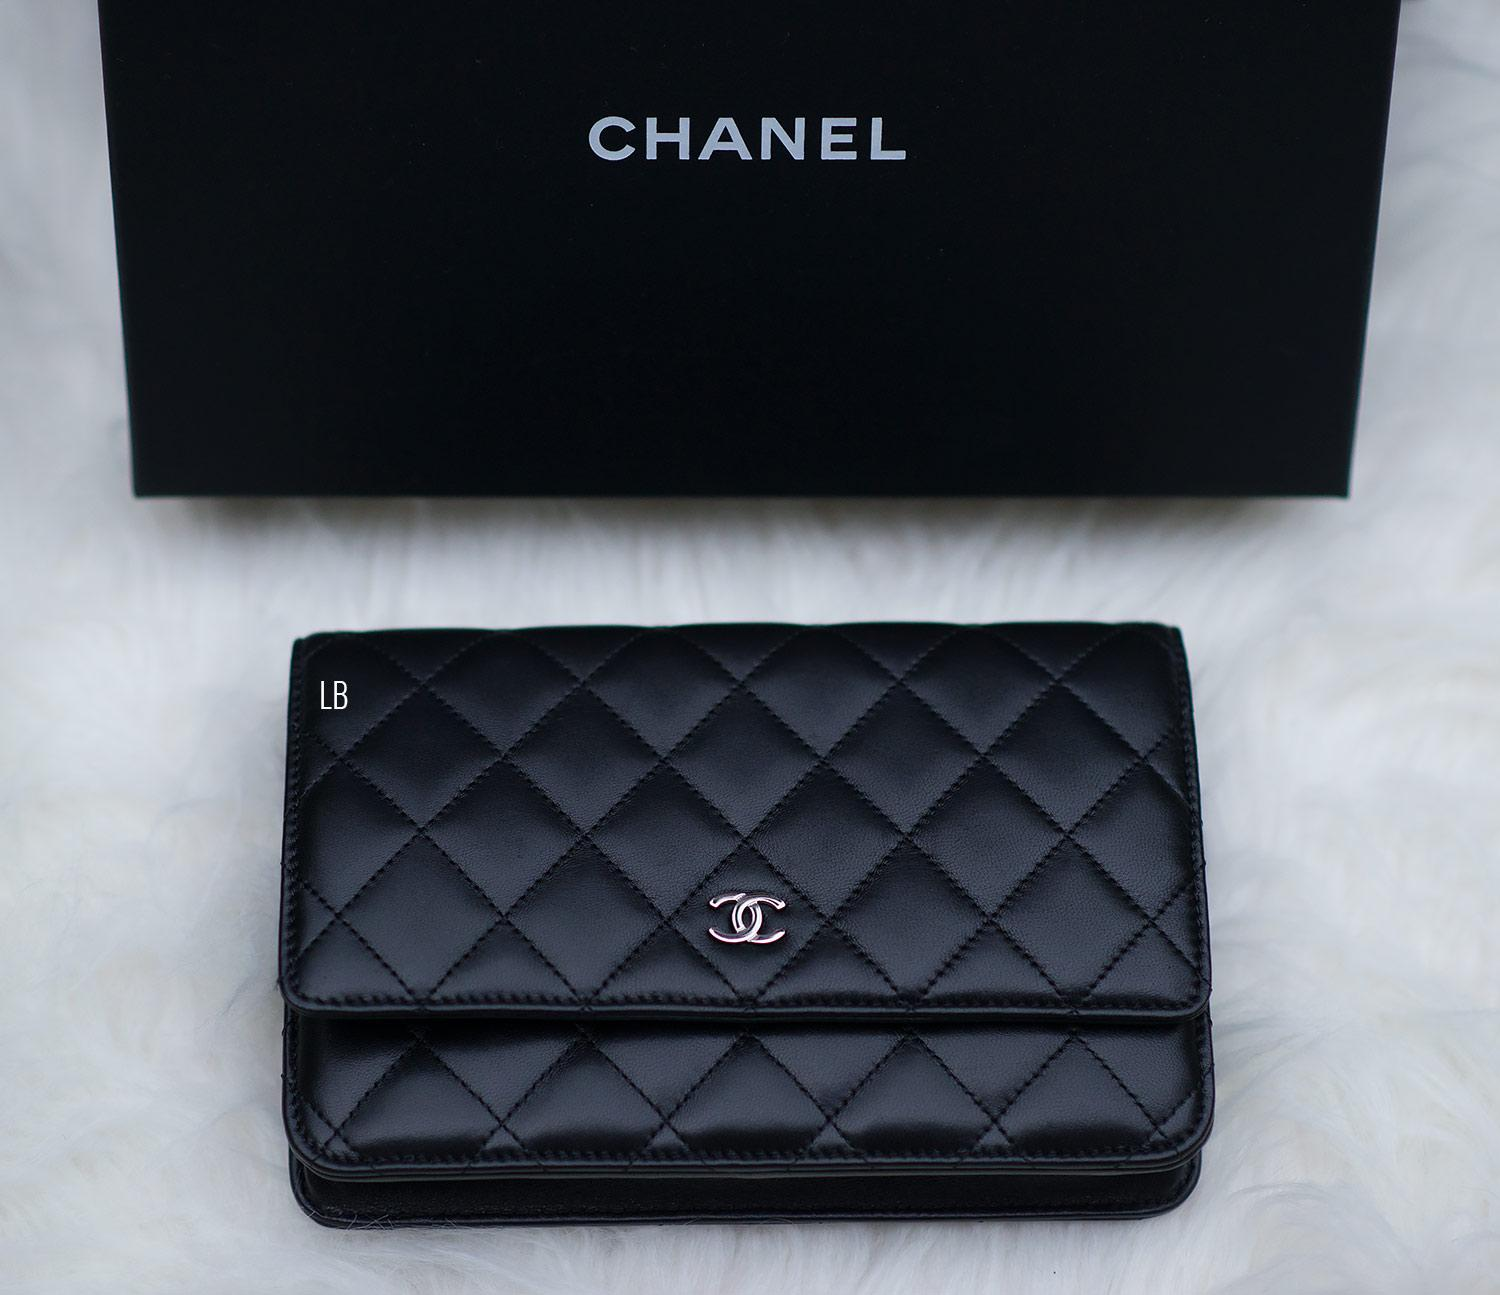 My New Chanel Wallet On Chain  WOC  Bag In Black  8895eb1d5